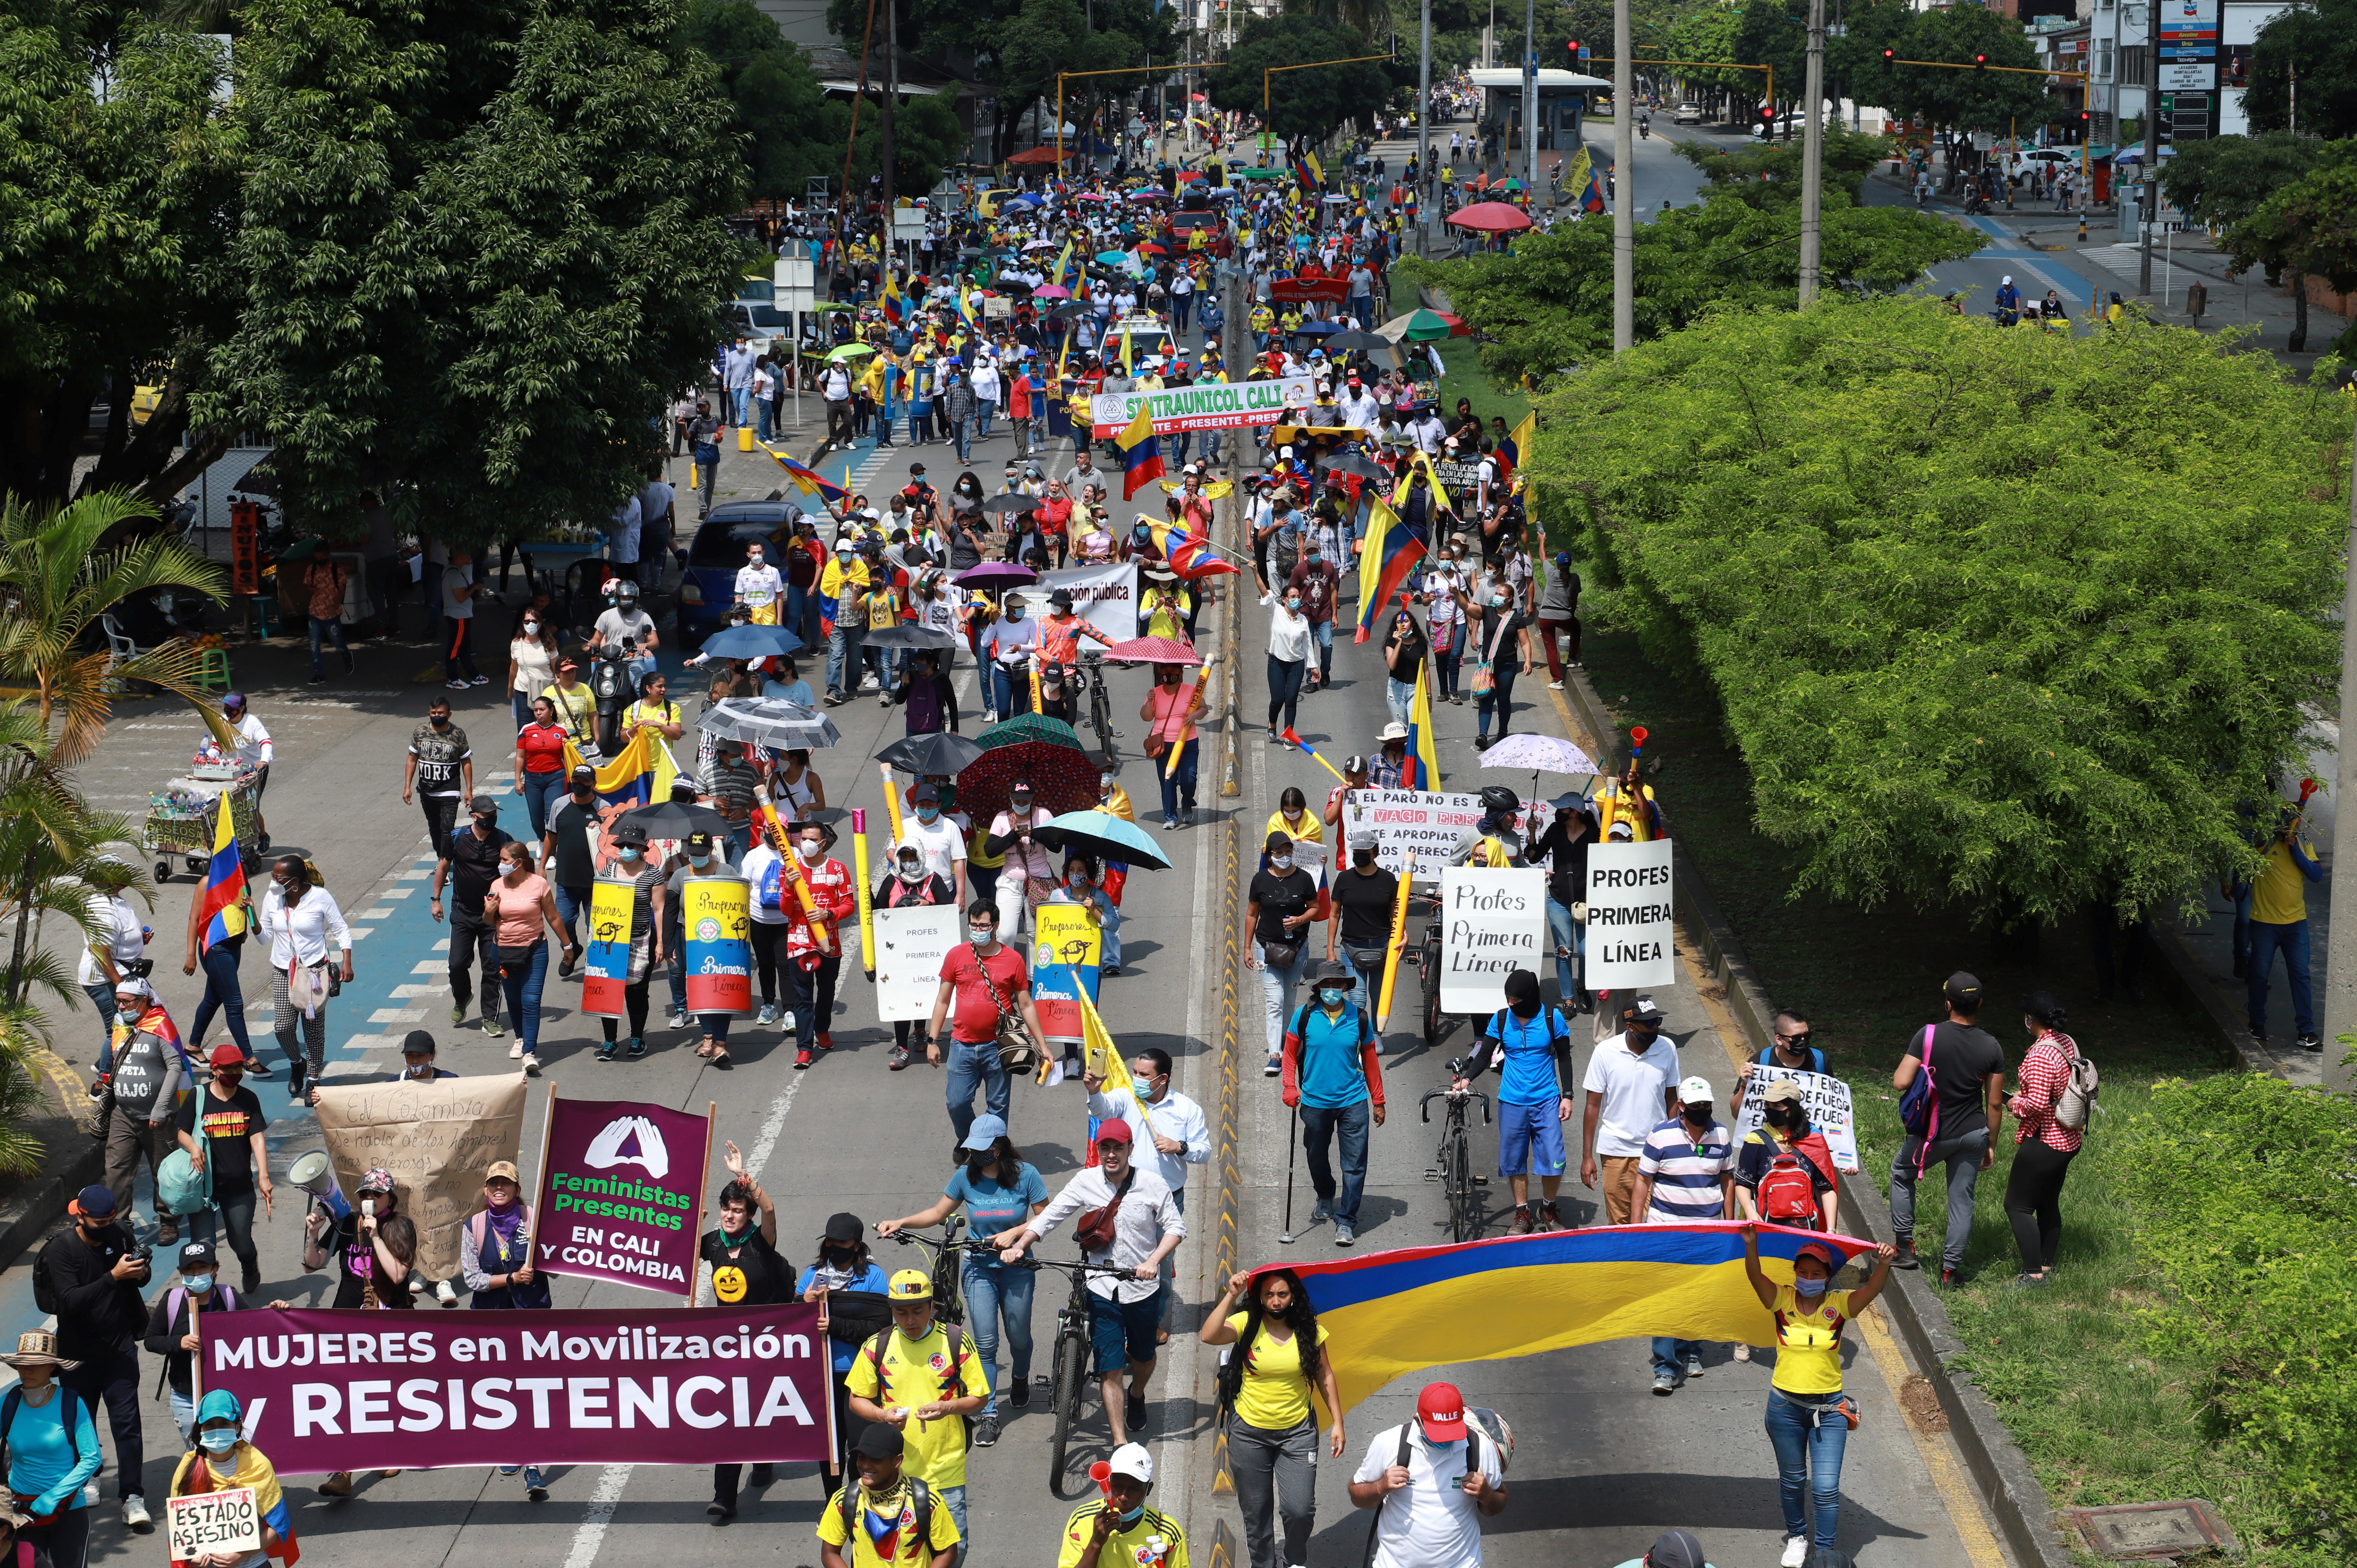 Demonstrators march during a protest demanding government action to tackle poverty, police violence and inequalities in healthcare and education systems, in Cali, Colombia June 2, 2021. REUTERS/Juan B Diaz